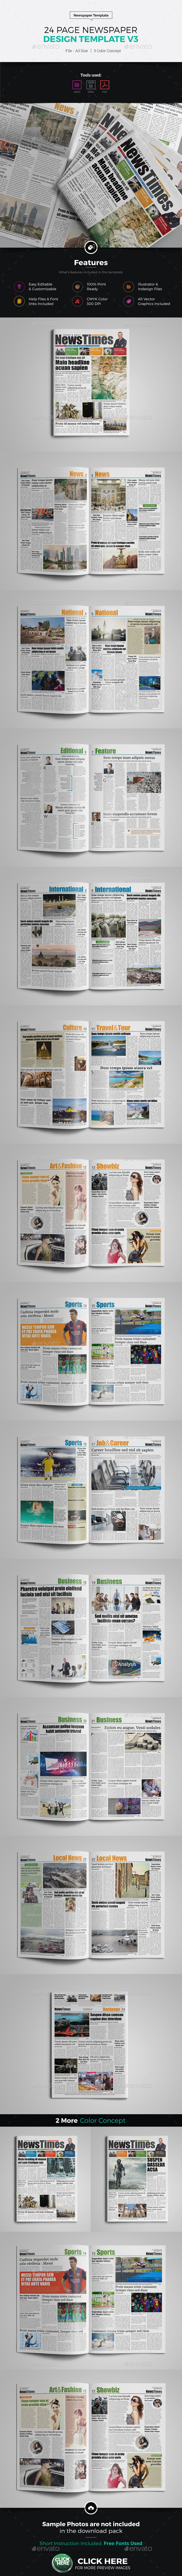 24 Page Newspaper InDesign v3 - Newsletters Print Templates